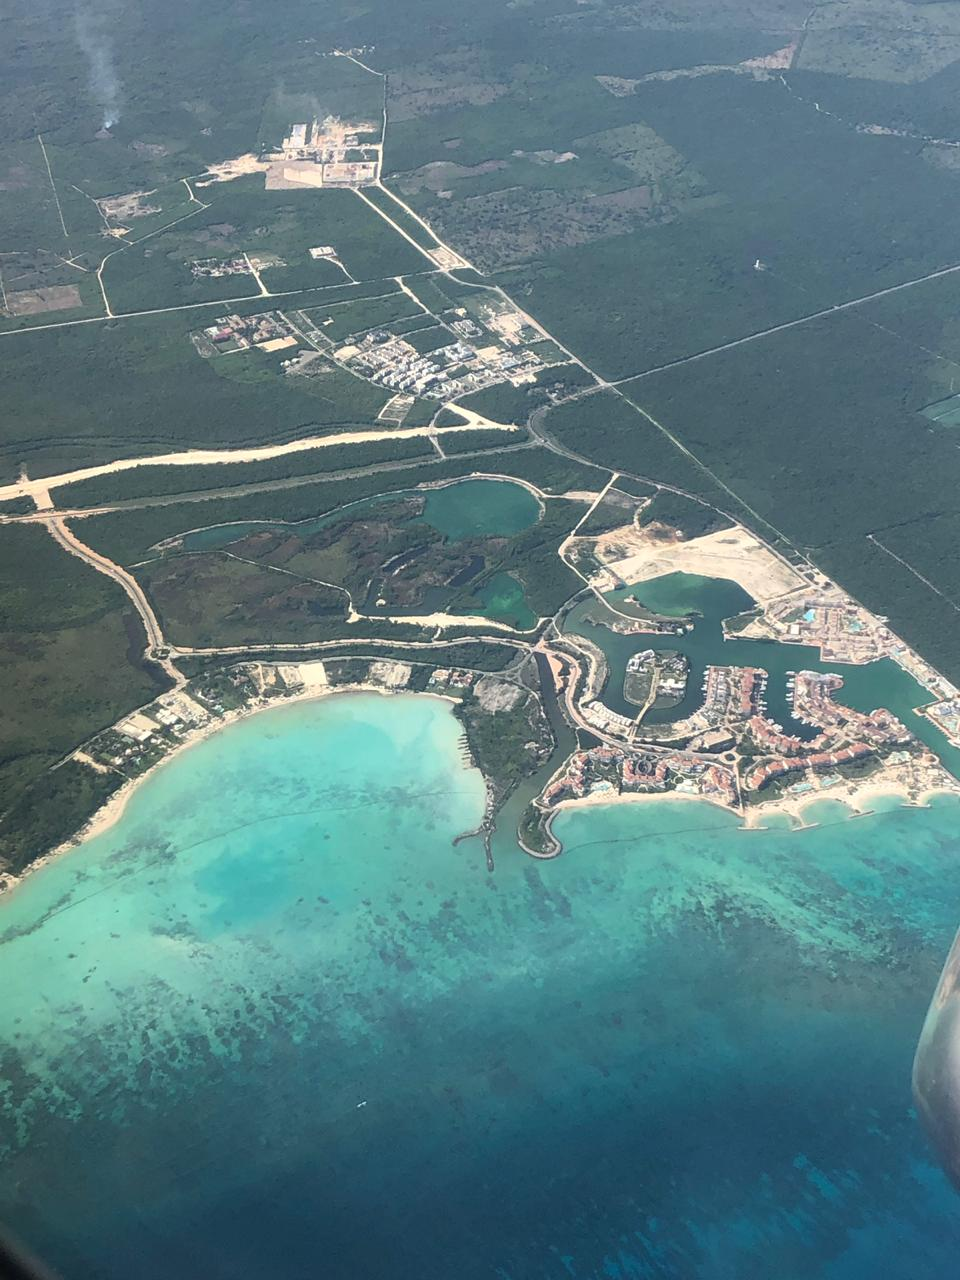 punta cana from the air